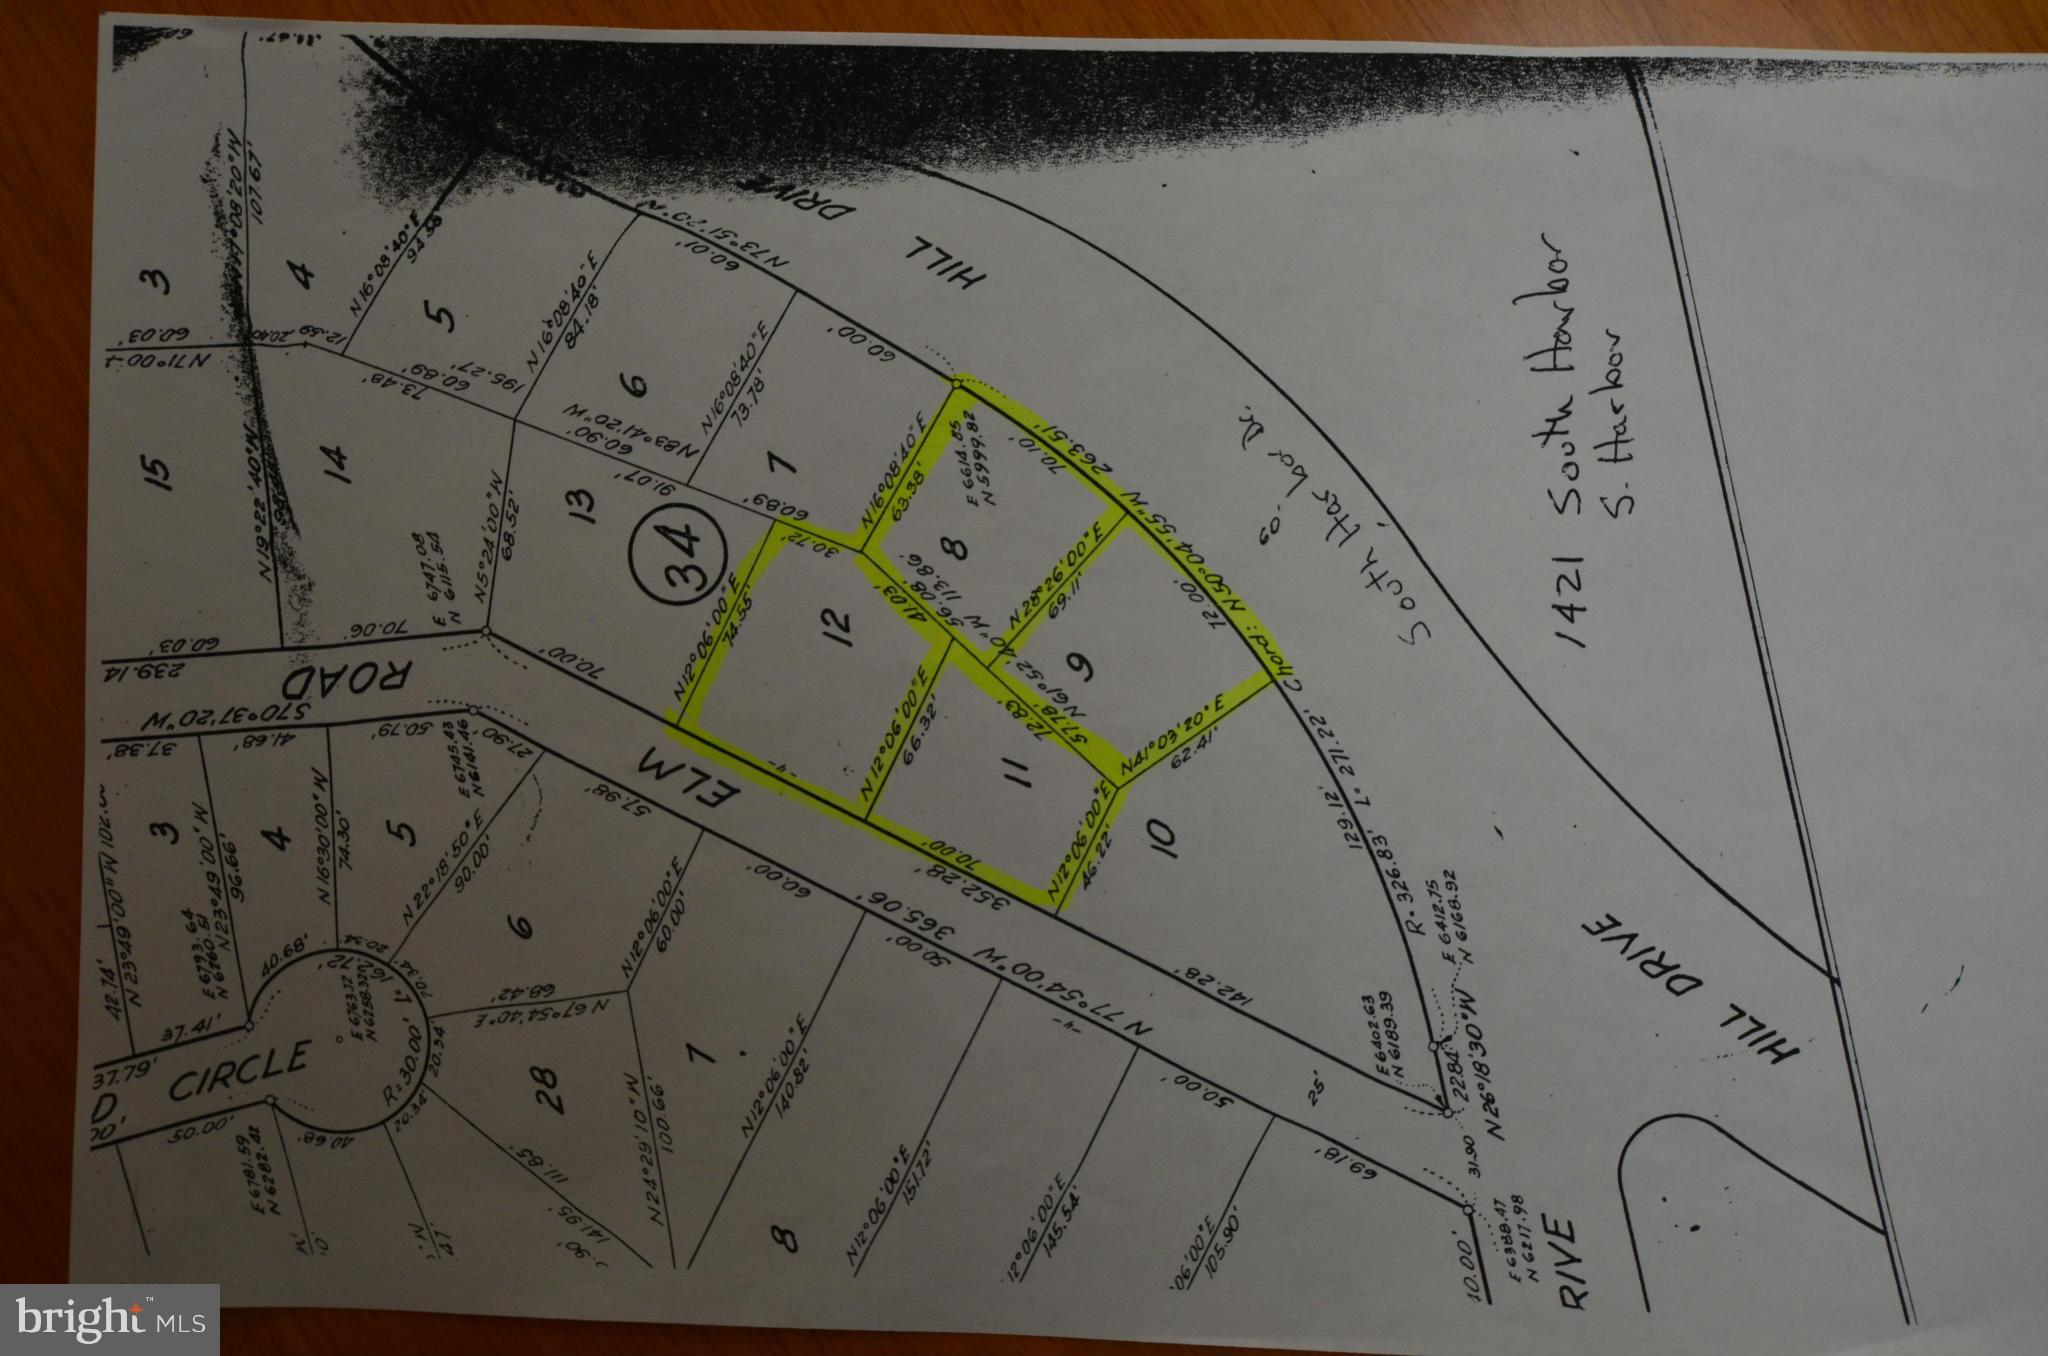 1421 S HARBOR DRIVE, ST LEONARD, Maryland 20685, ,Lots And Land,For Sale,1421 S HARBOR DRIVE,1000106611